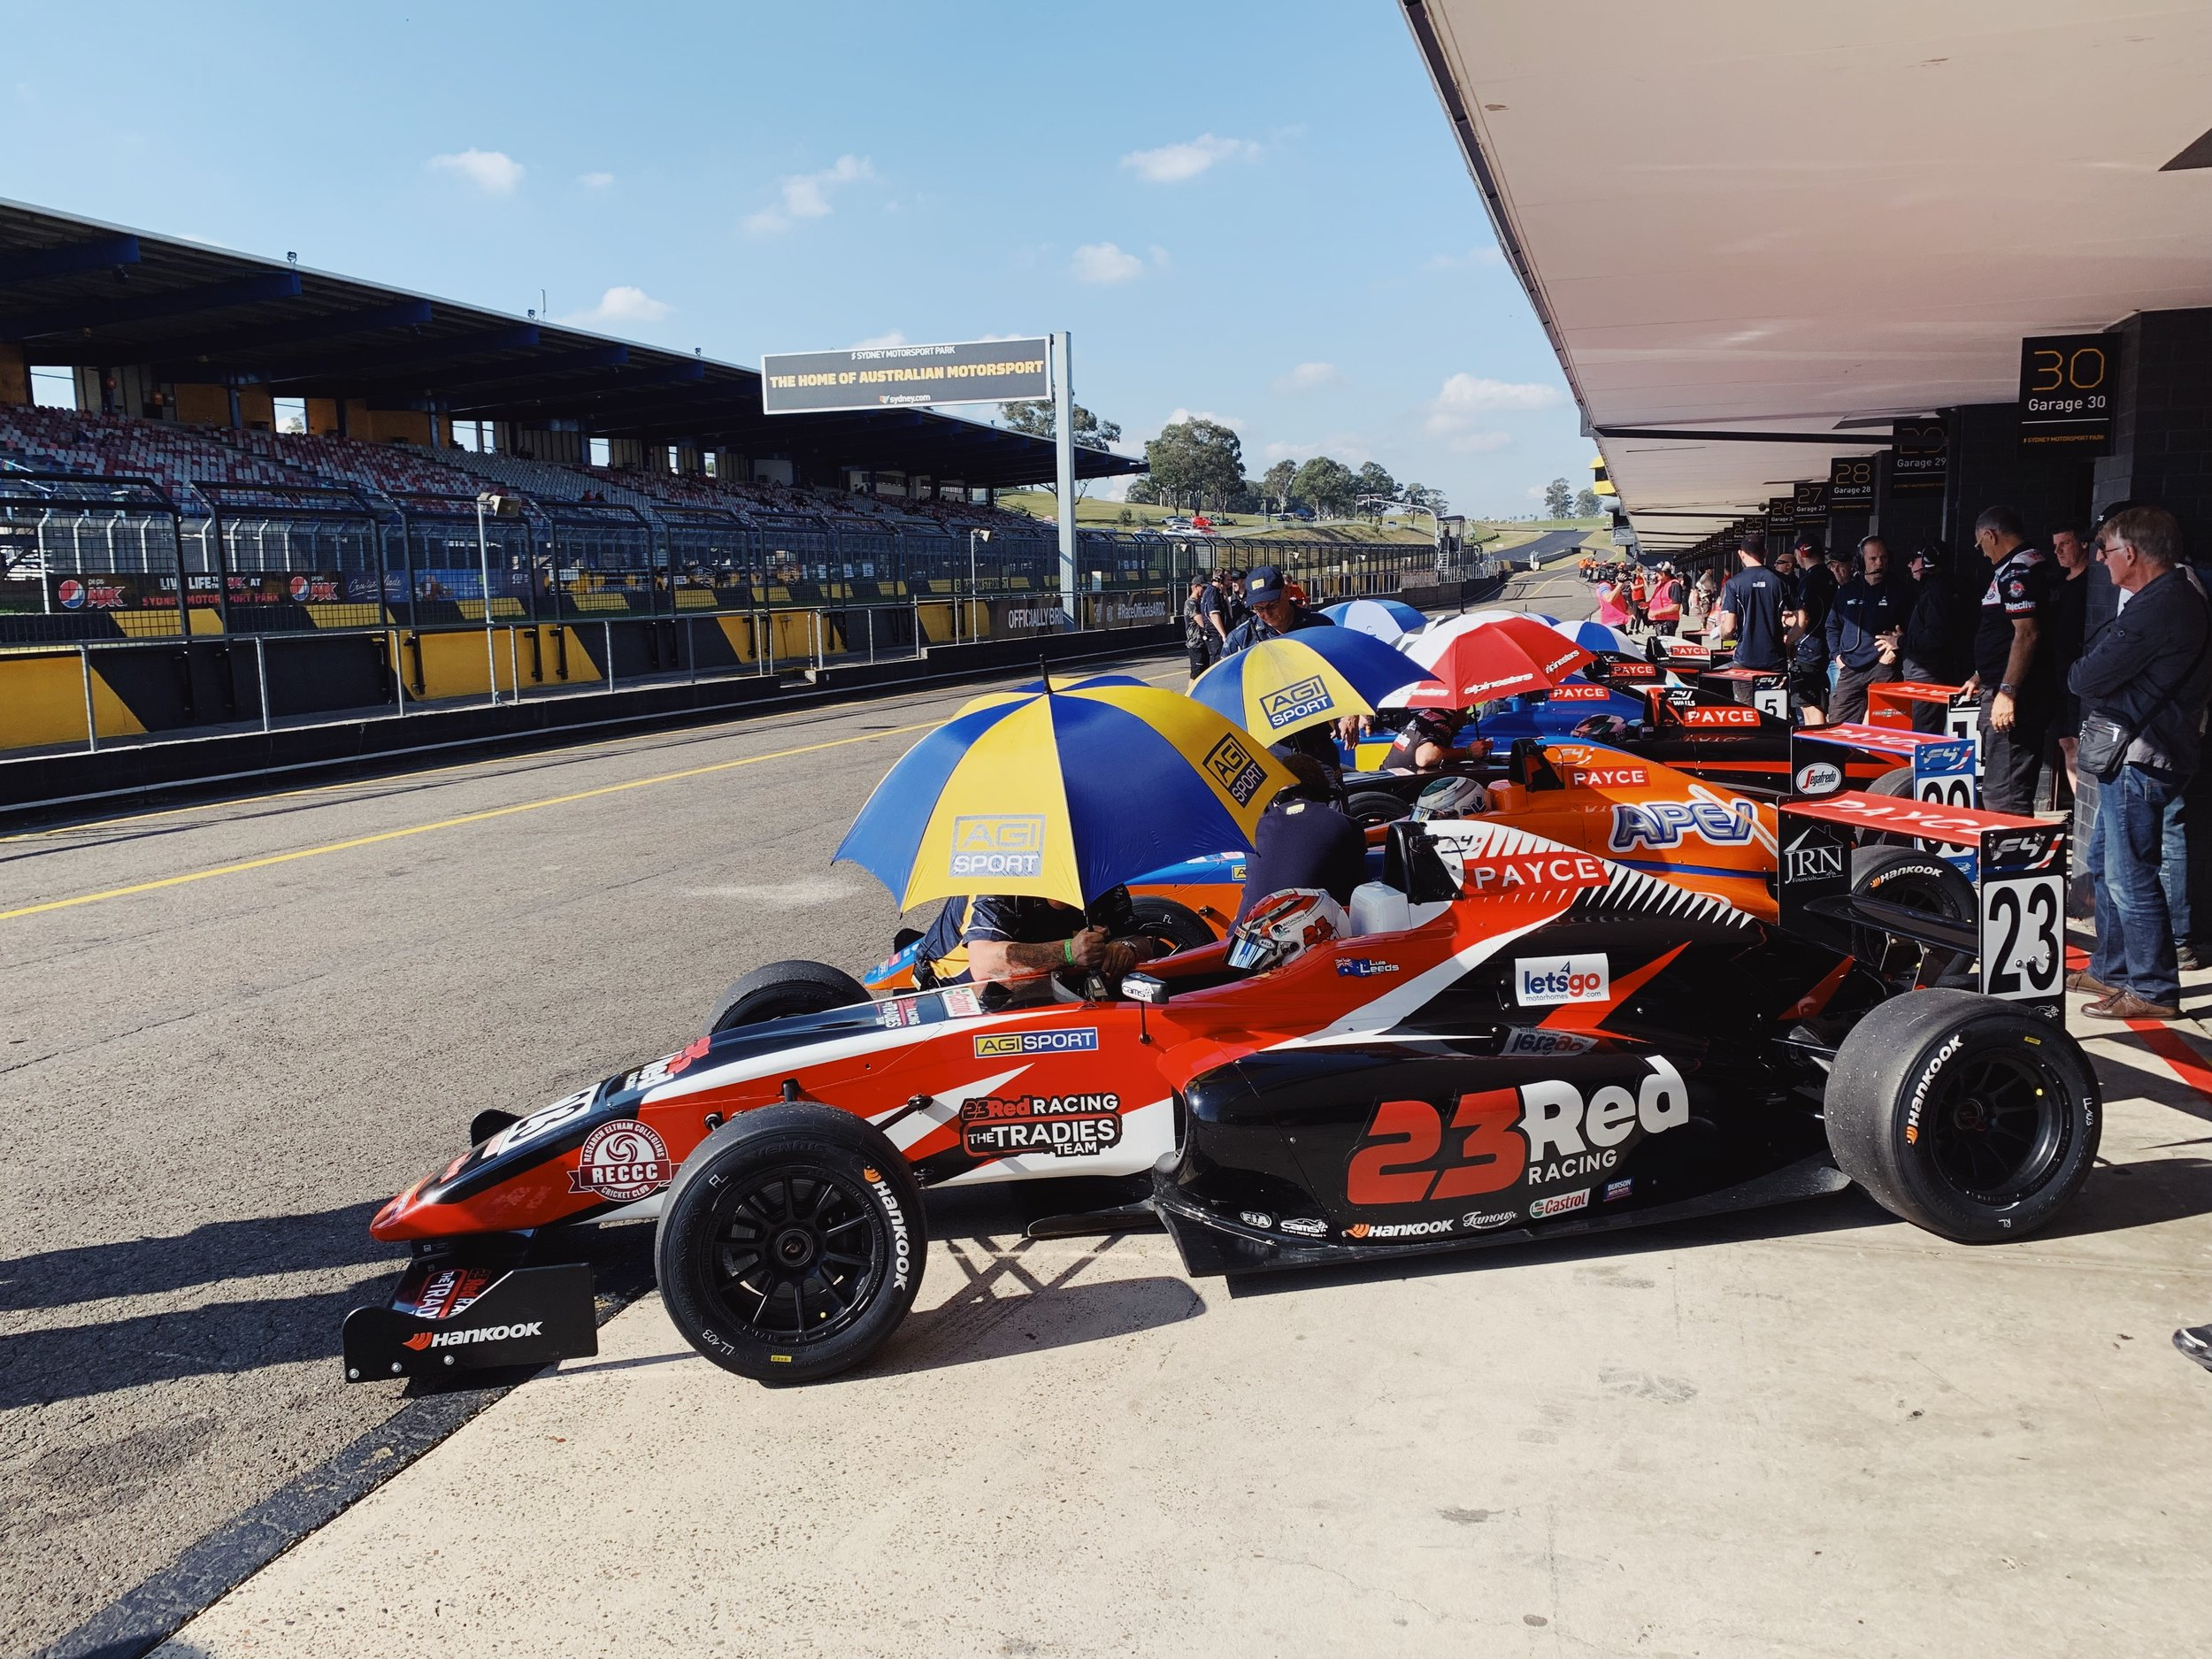 The Formula 4 field lines up before the race.